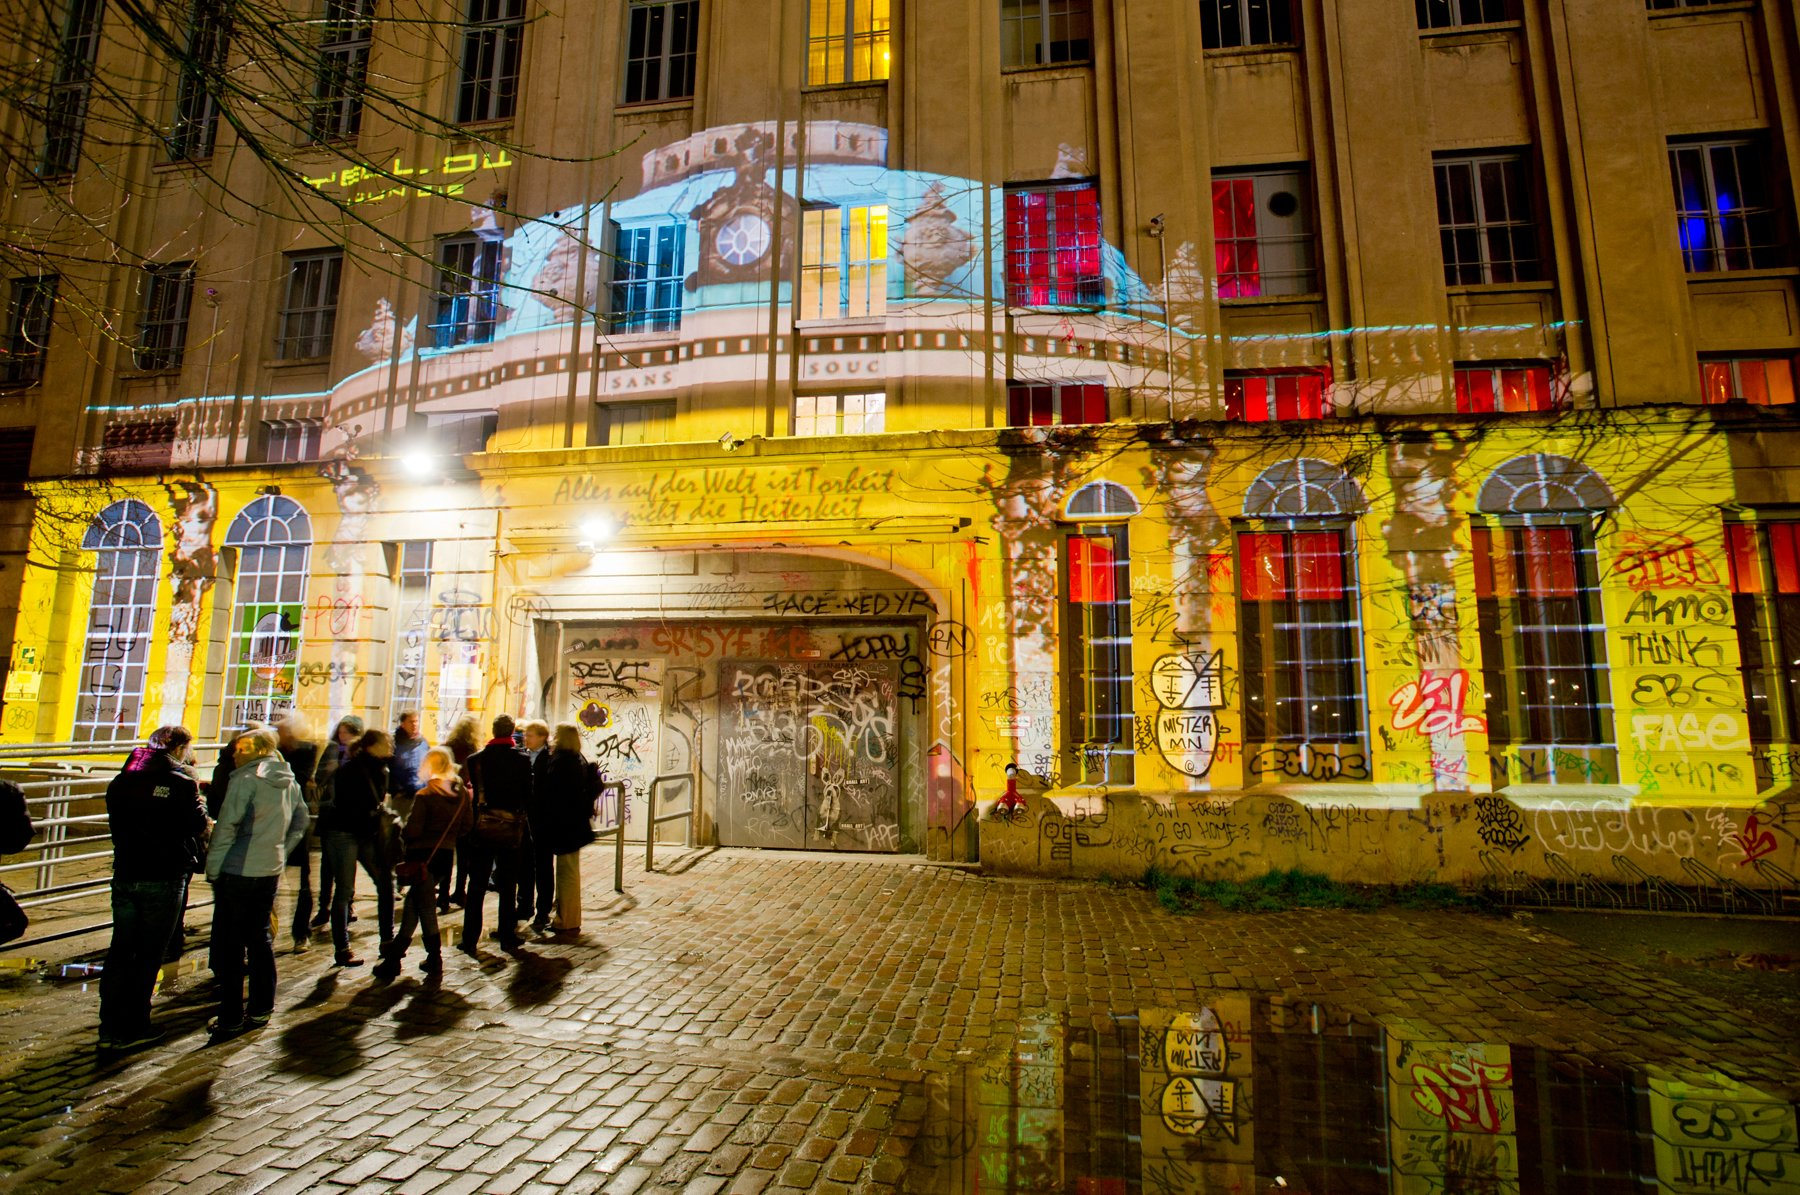 Take a virtual tour of Berghain